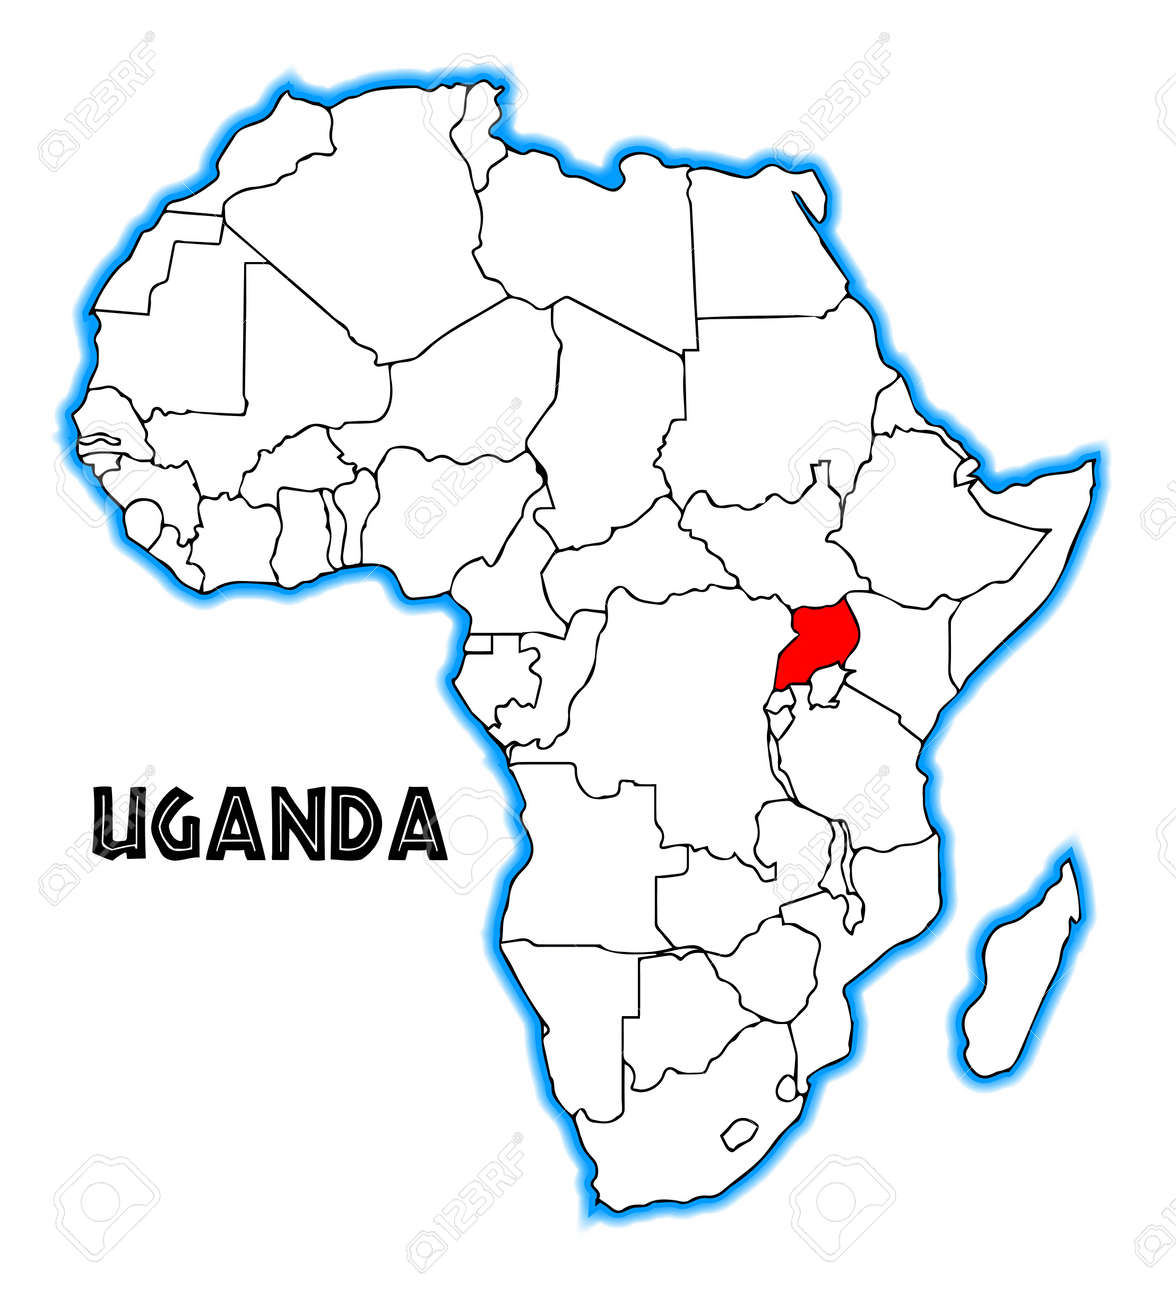 africa map with uganda